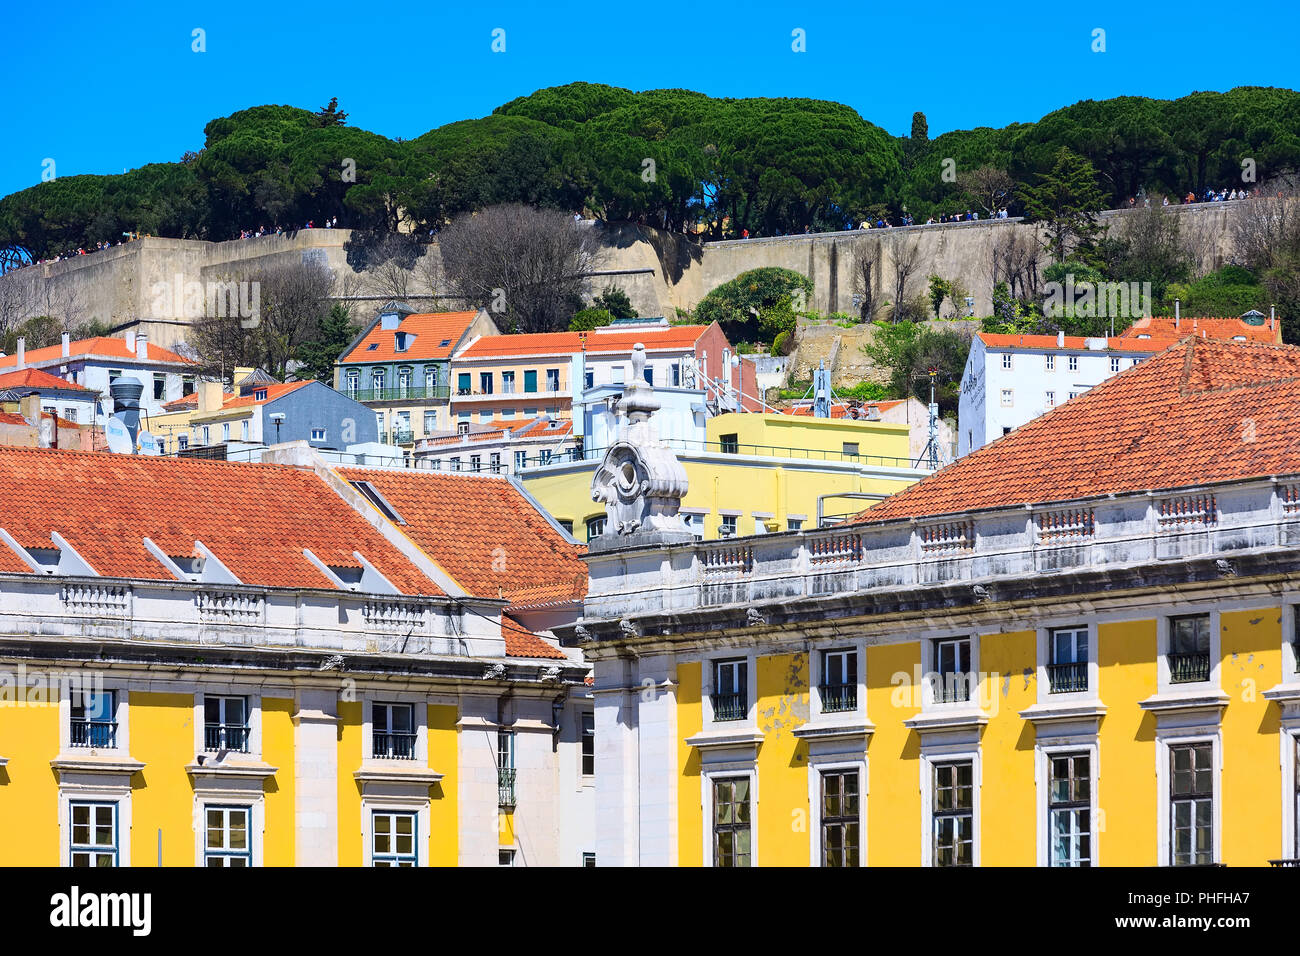 Lisbon, Portugal landmark, square of commerce, houses and Saint George Castle on the hill - Stock Image